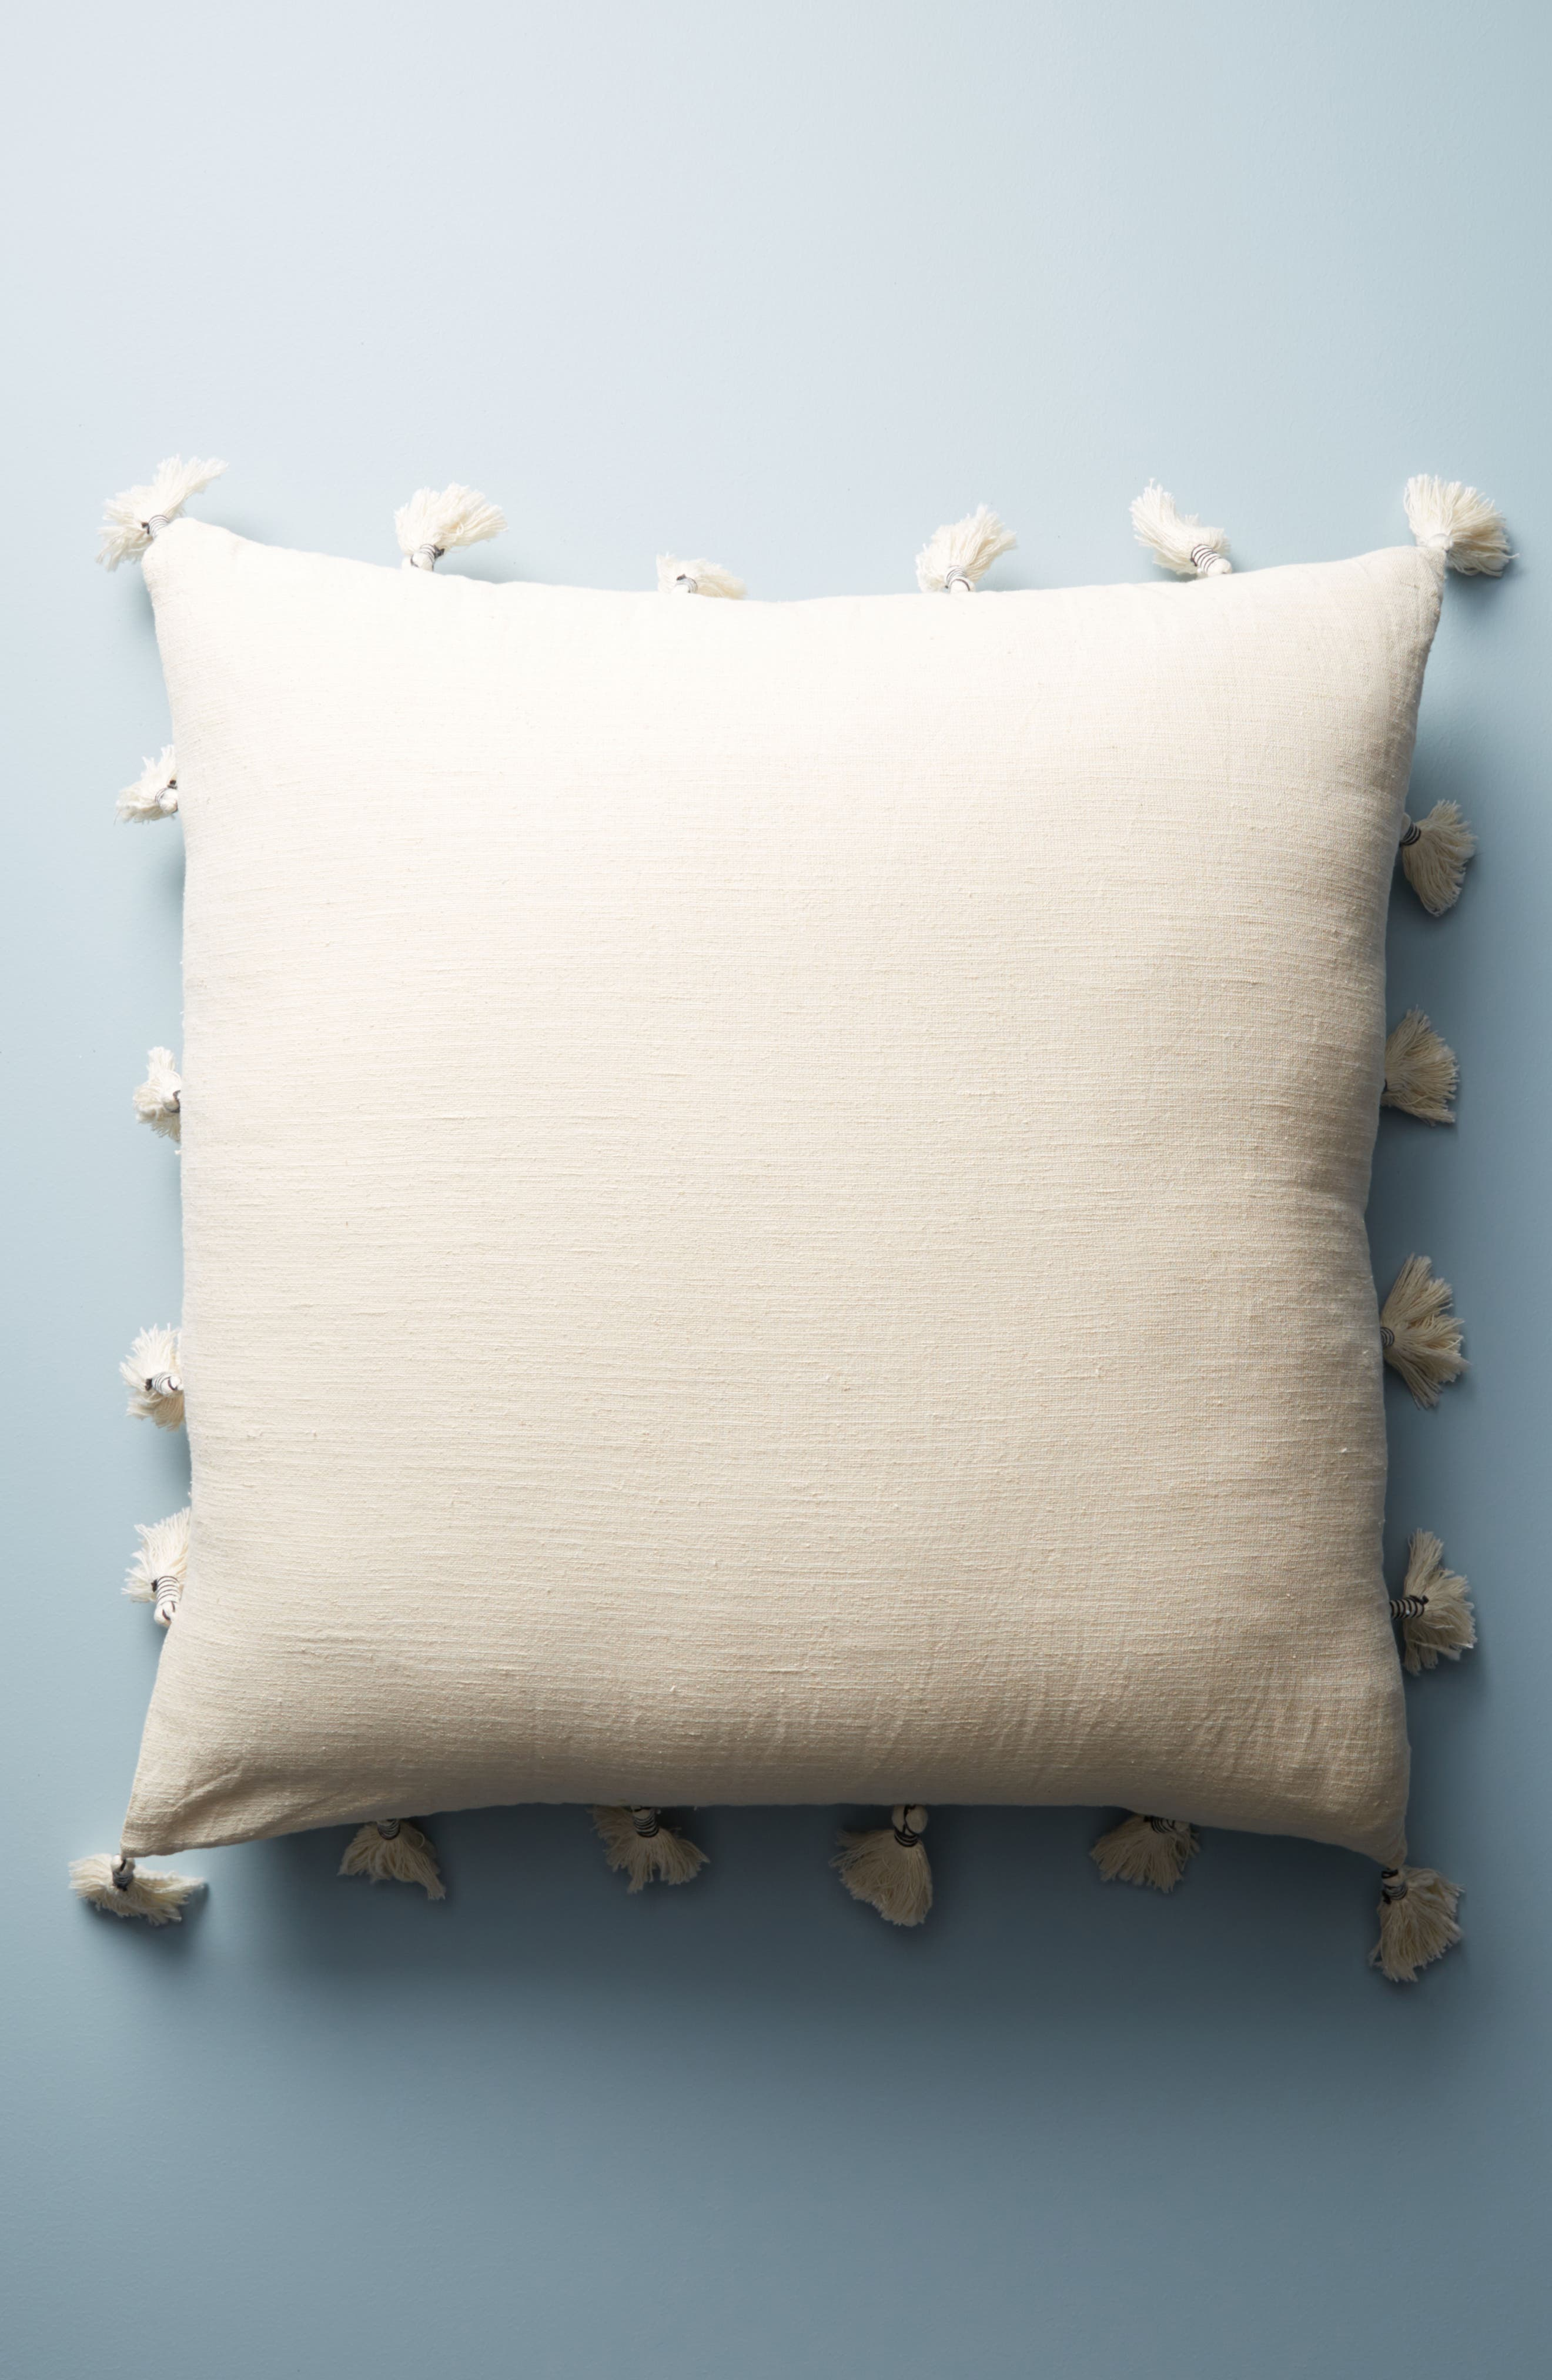 Tufted Amal Accent Pillow,                             Alternate thumbnail 2, color,                             Blue